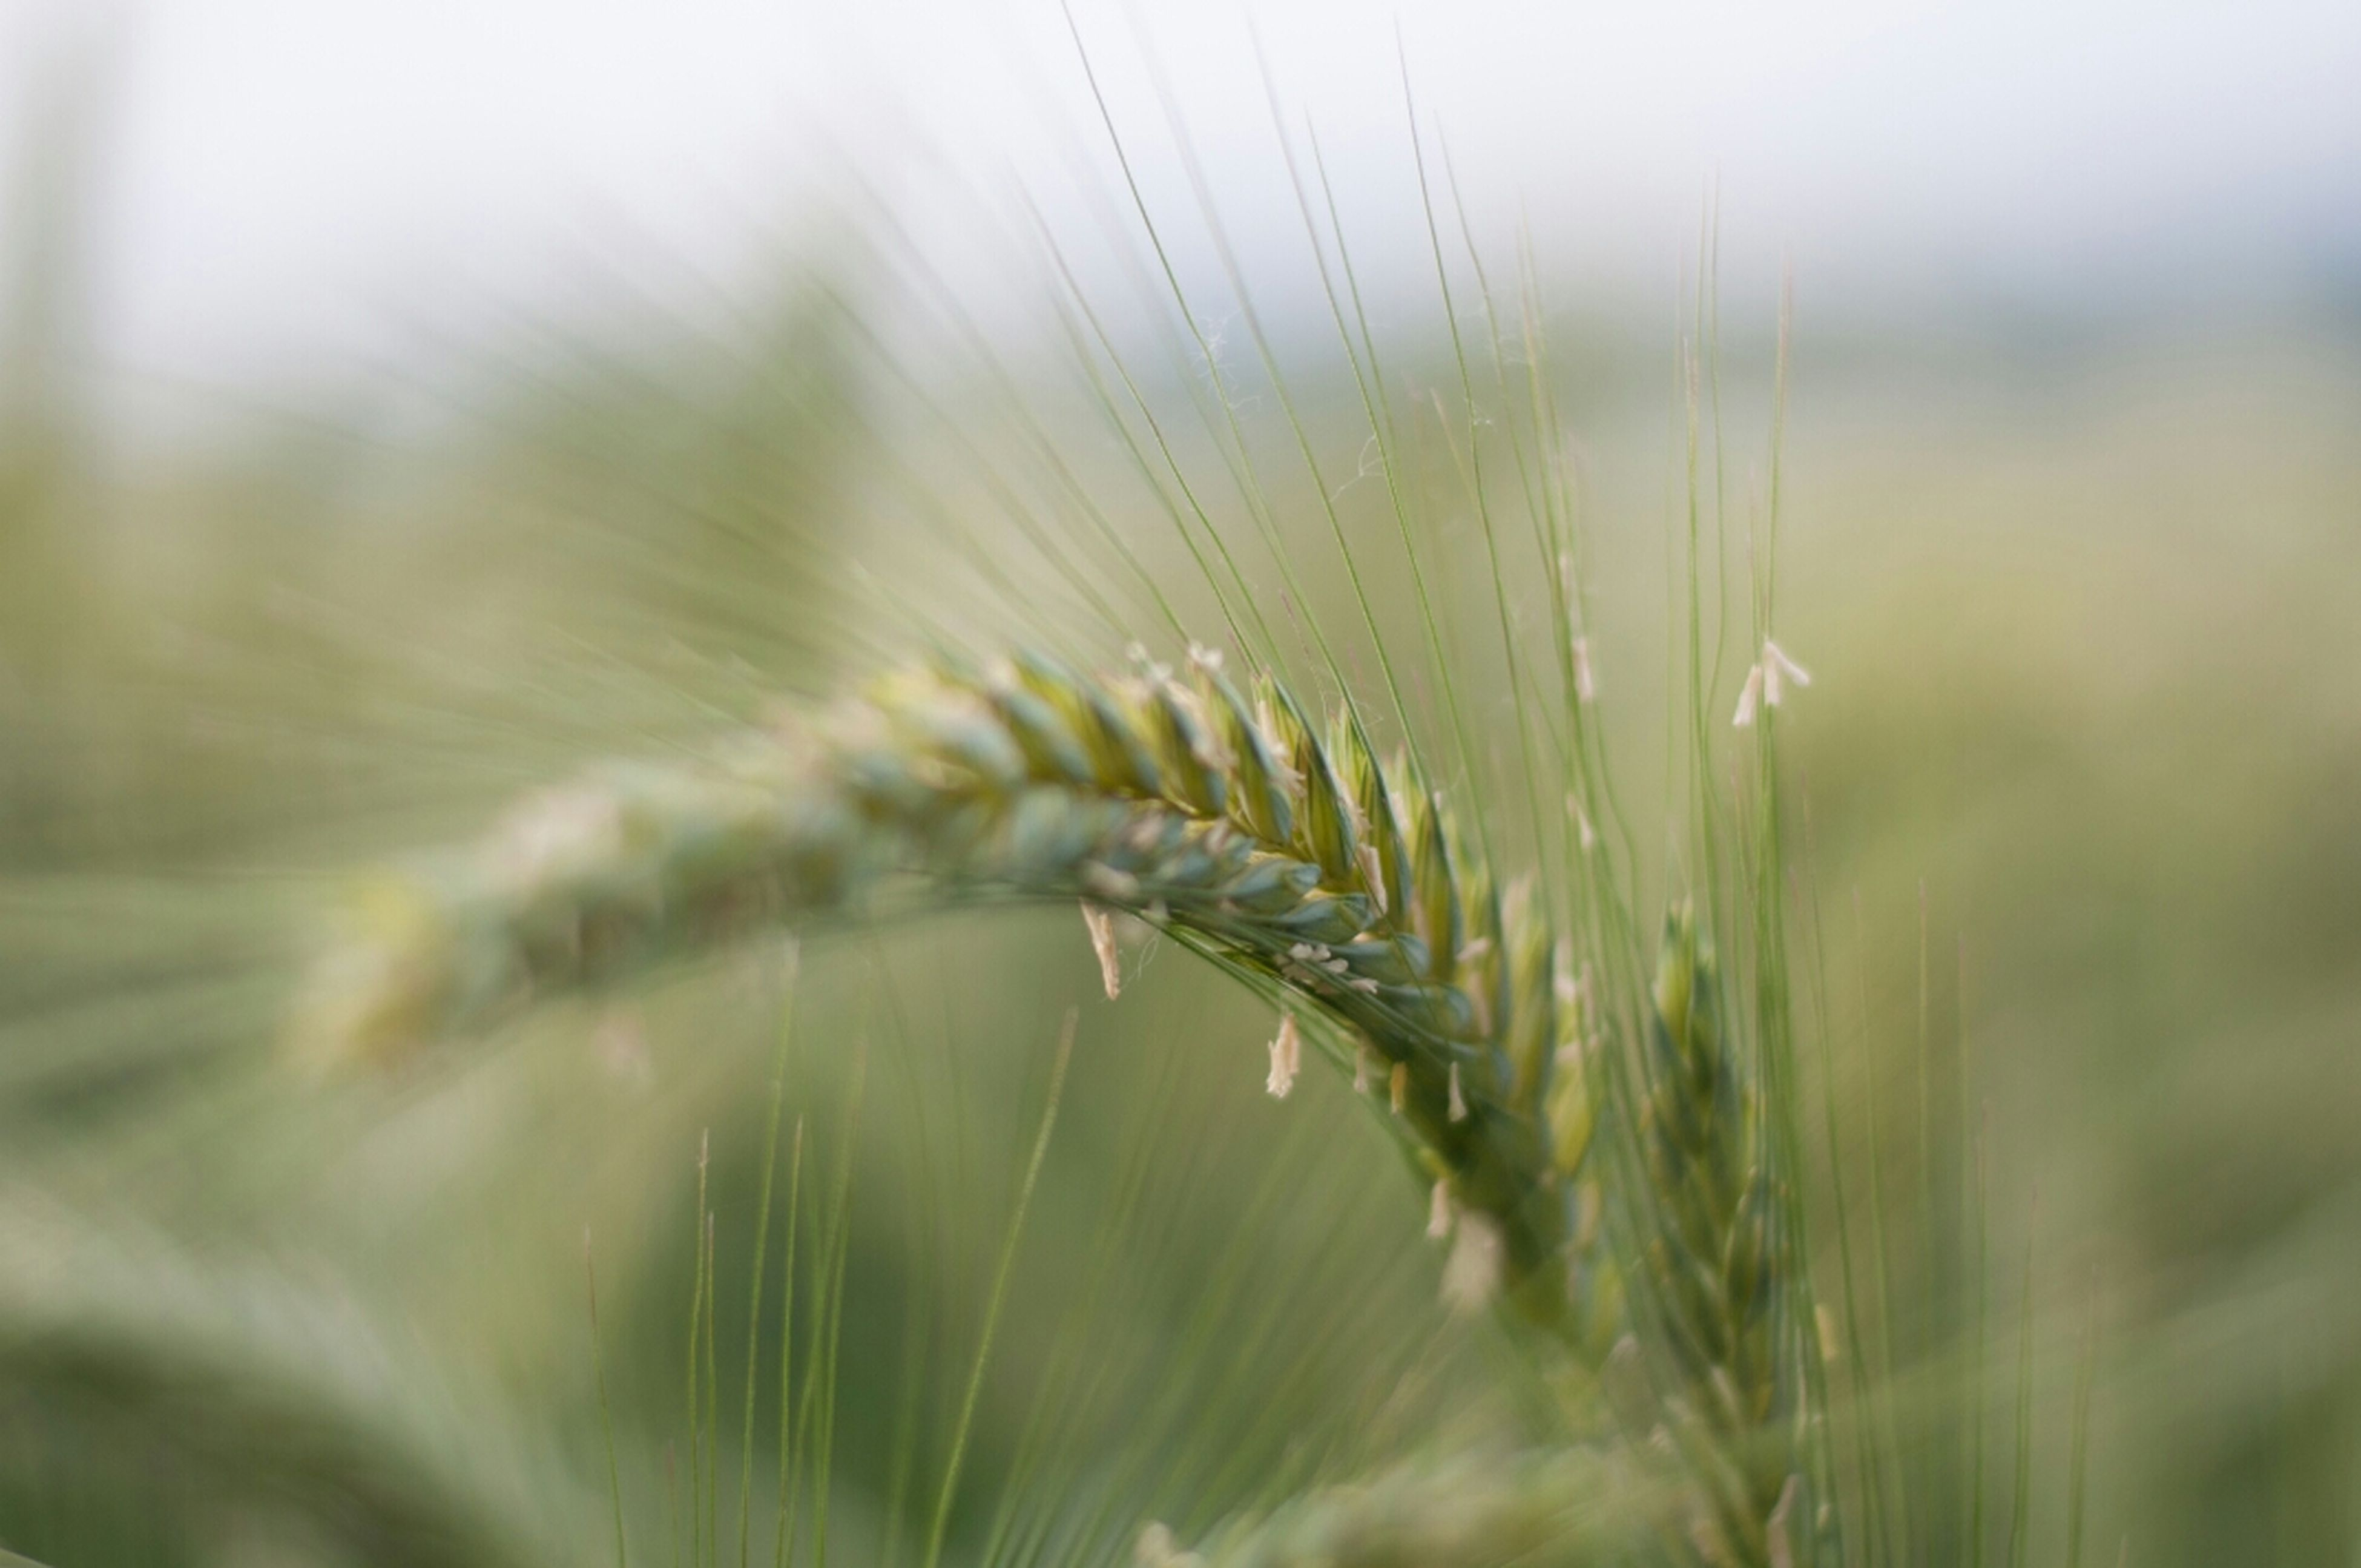 focus on foreground, close-up, growth, plant, grass, nature, selective focus, water, drop, blade of grass, beauty in nature, fragility, spider web, tranquility, wet, freshness, stem, day, field, outdoors